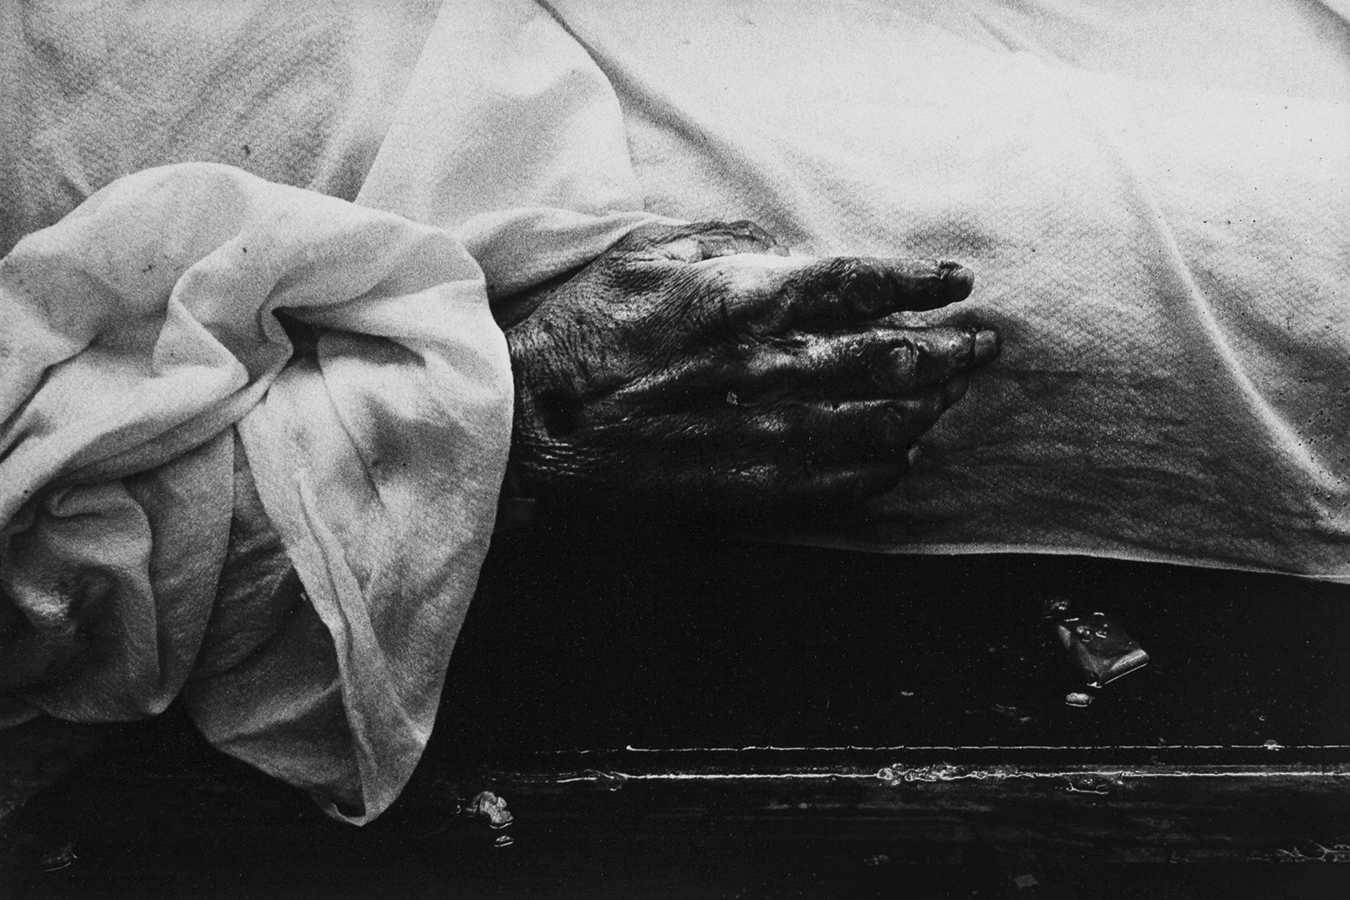 Tony_Ward_Photography_early_work_documentary_Anatomy_Lesson_medical_college_Temple's_Kresge_Science_Center_dead_male_dead_hand